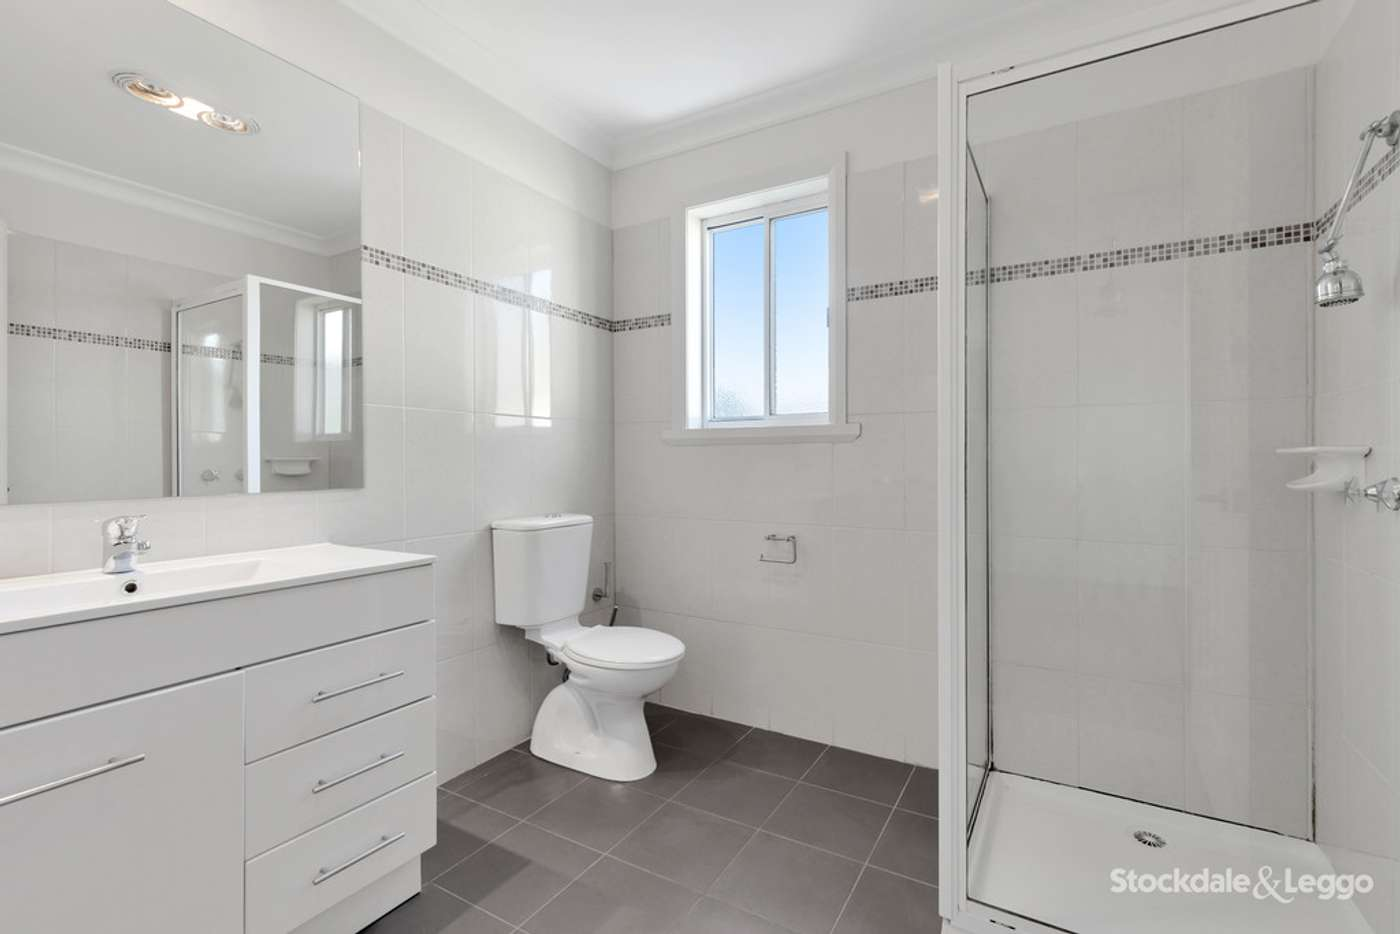 Sixth view of Homely house listing, 2 Pitt Street, Fawkner VIC 3060